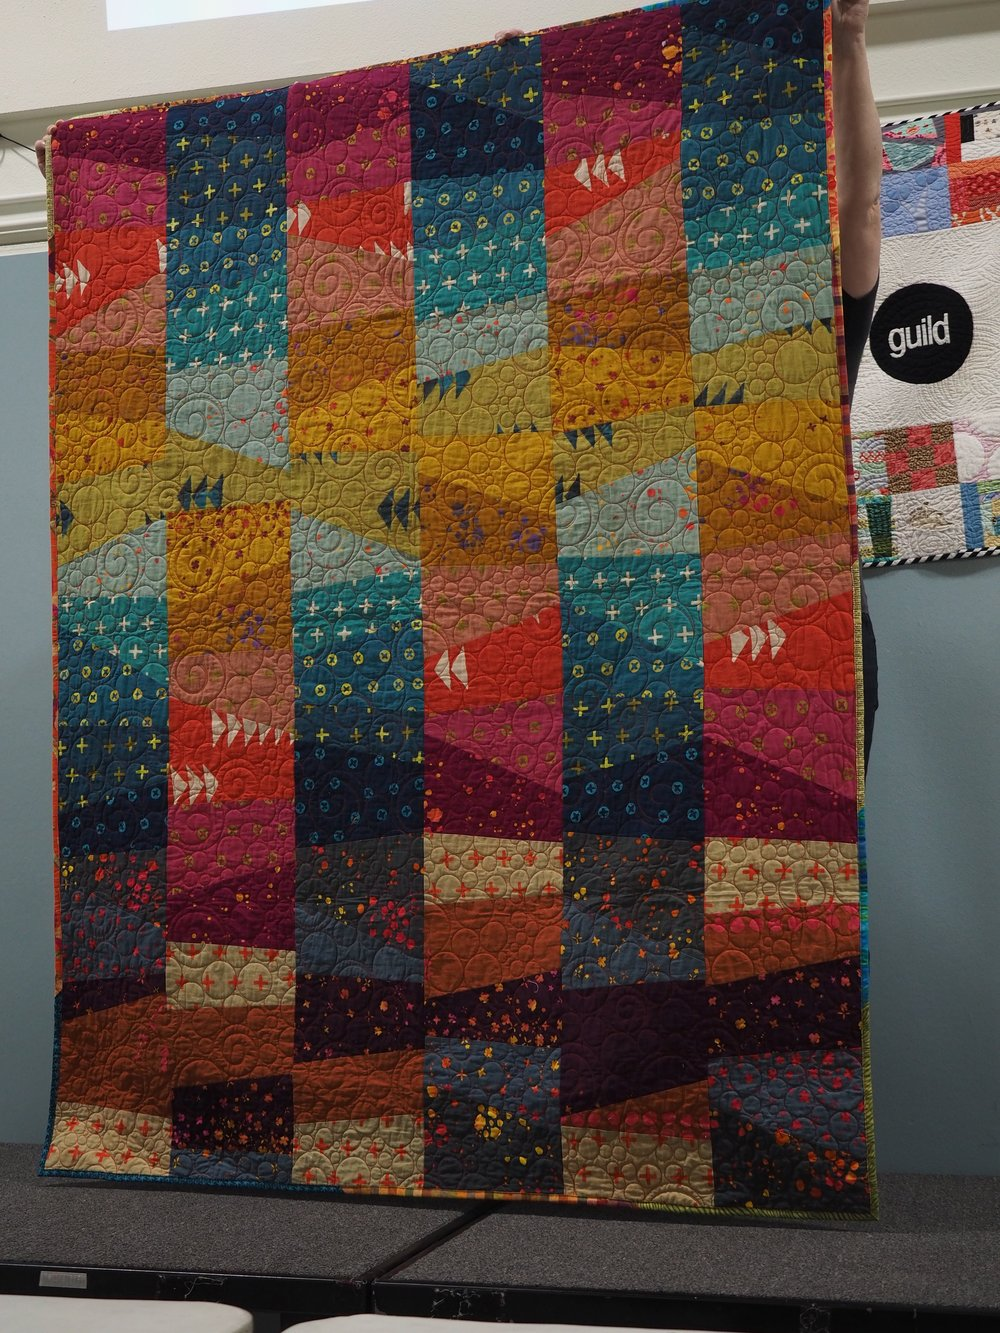 Quilt featuring Alison Glass fabrics by Nancy Raymond